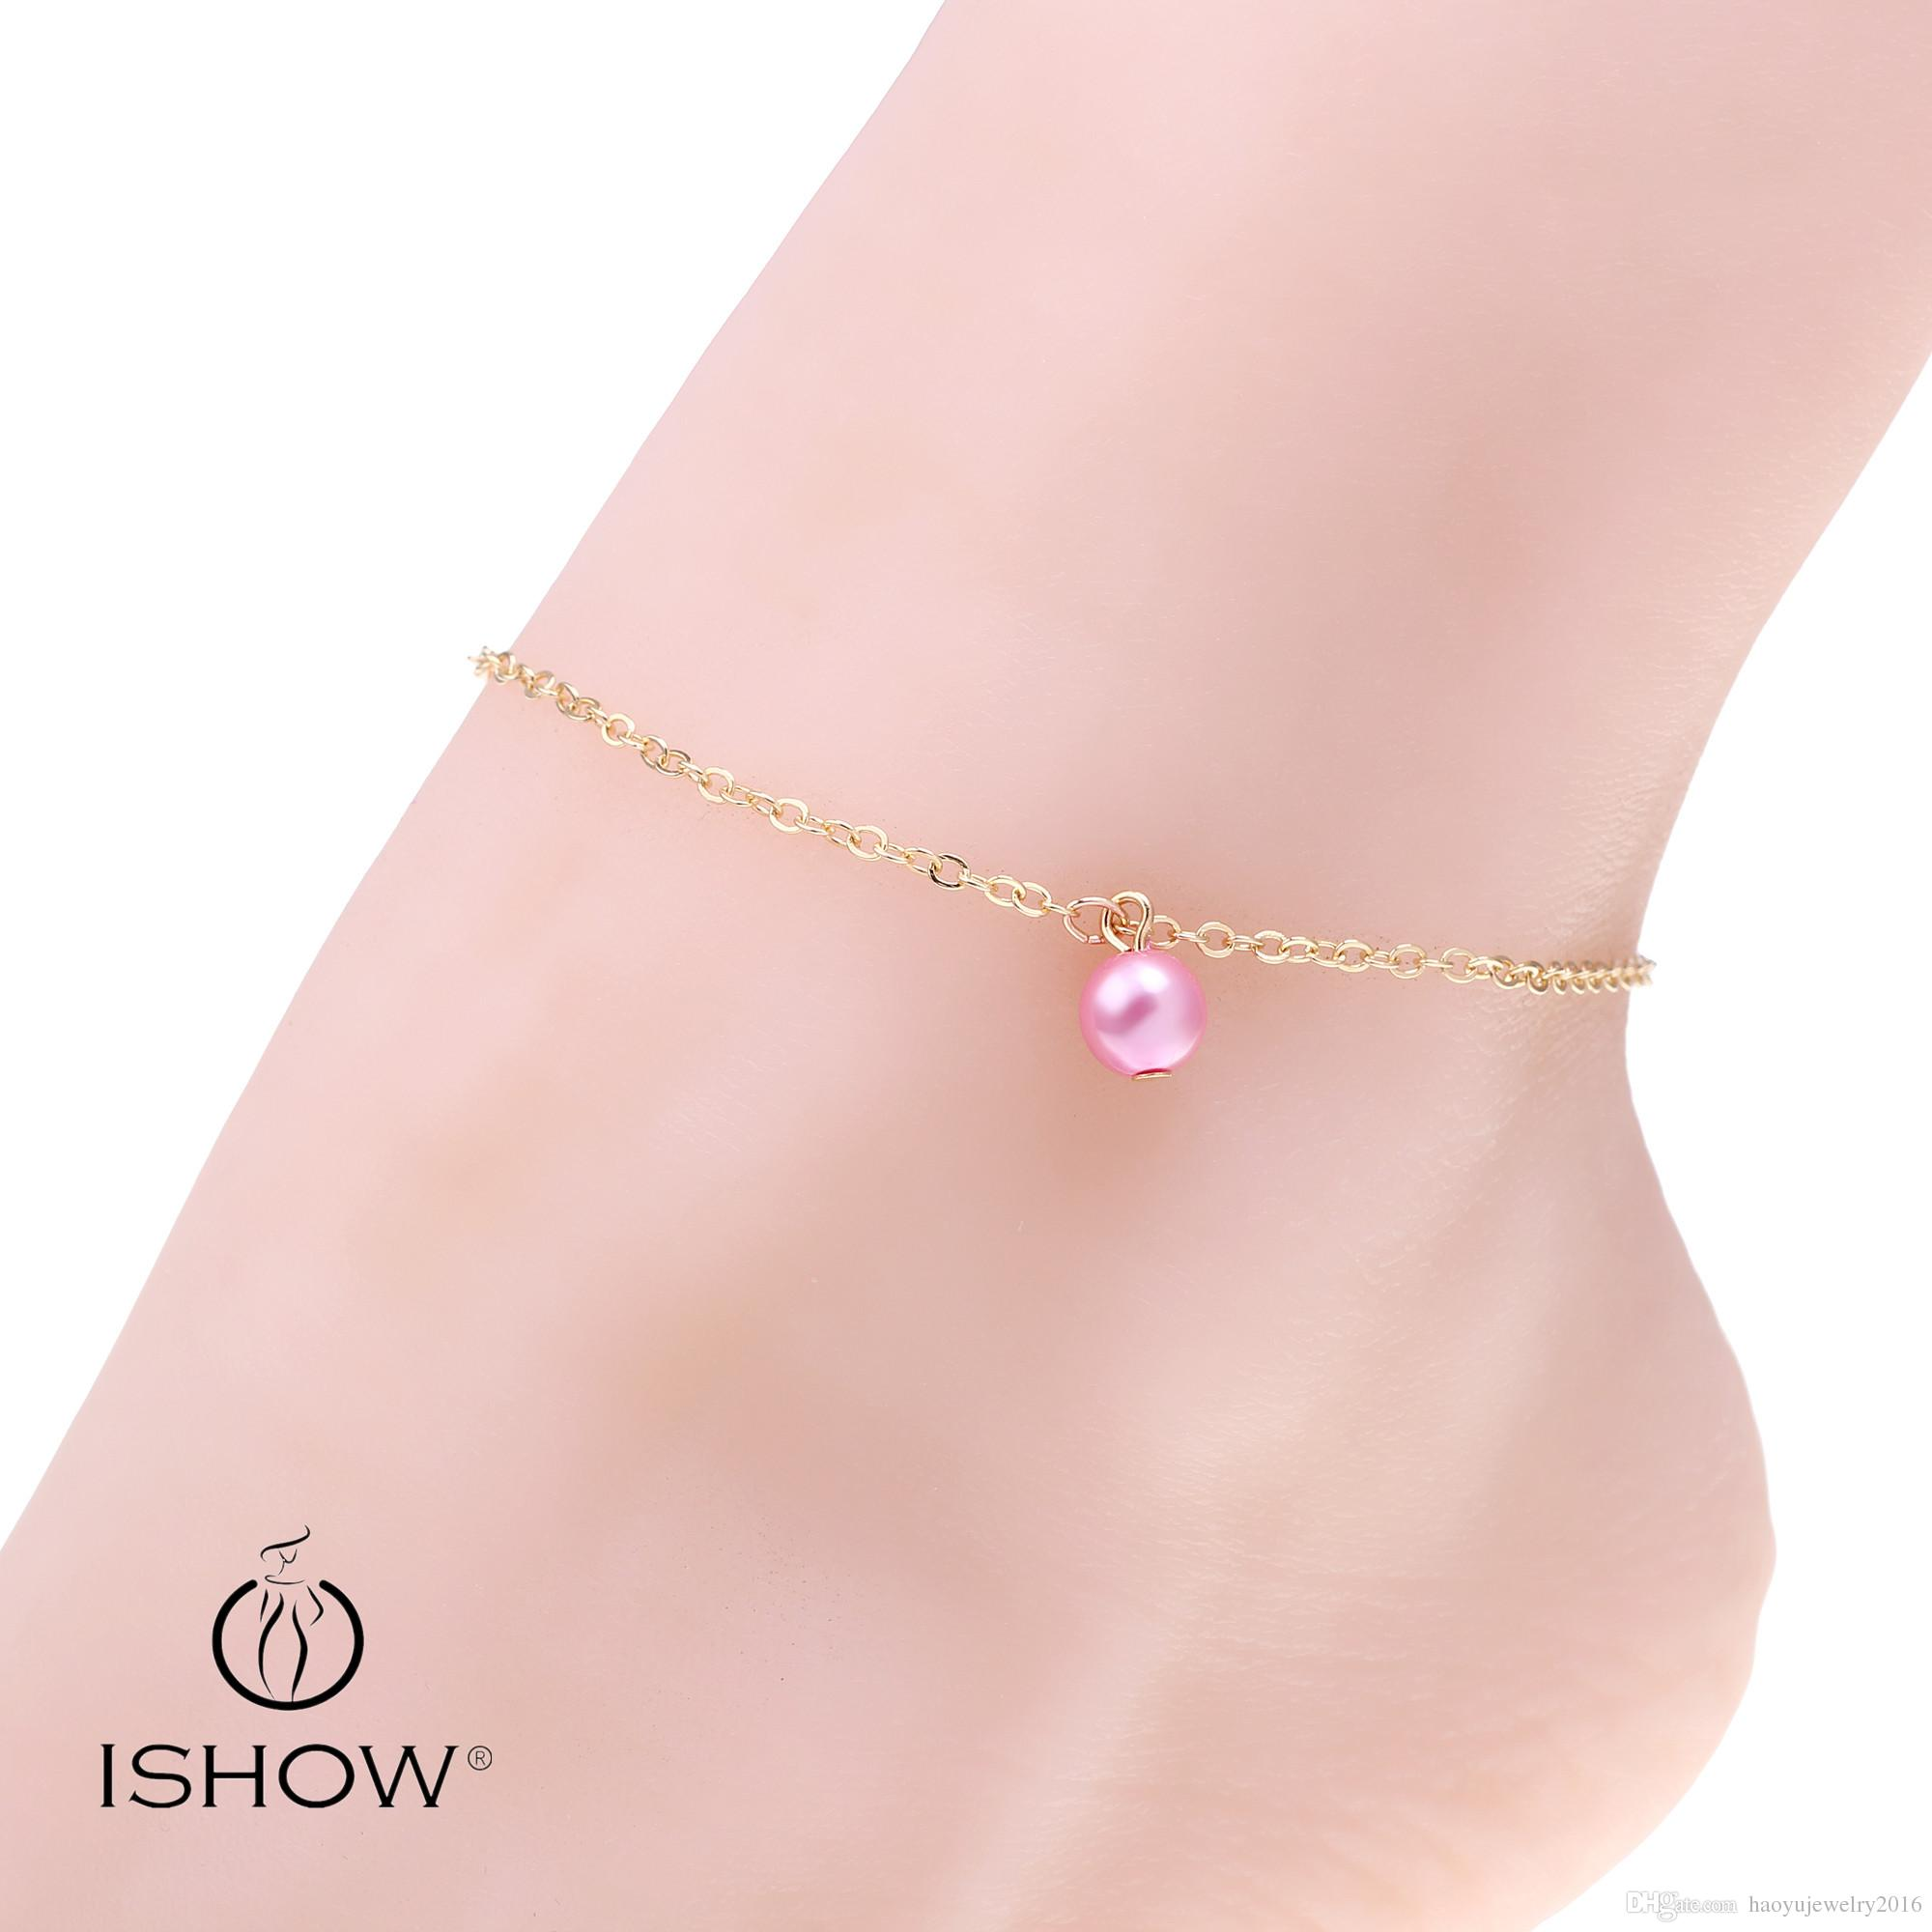 fullscreen gold jewelry bracelet kojis in lyst diamond tennis anklet view white